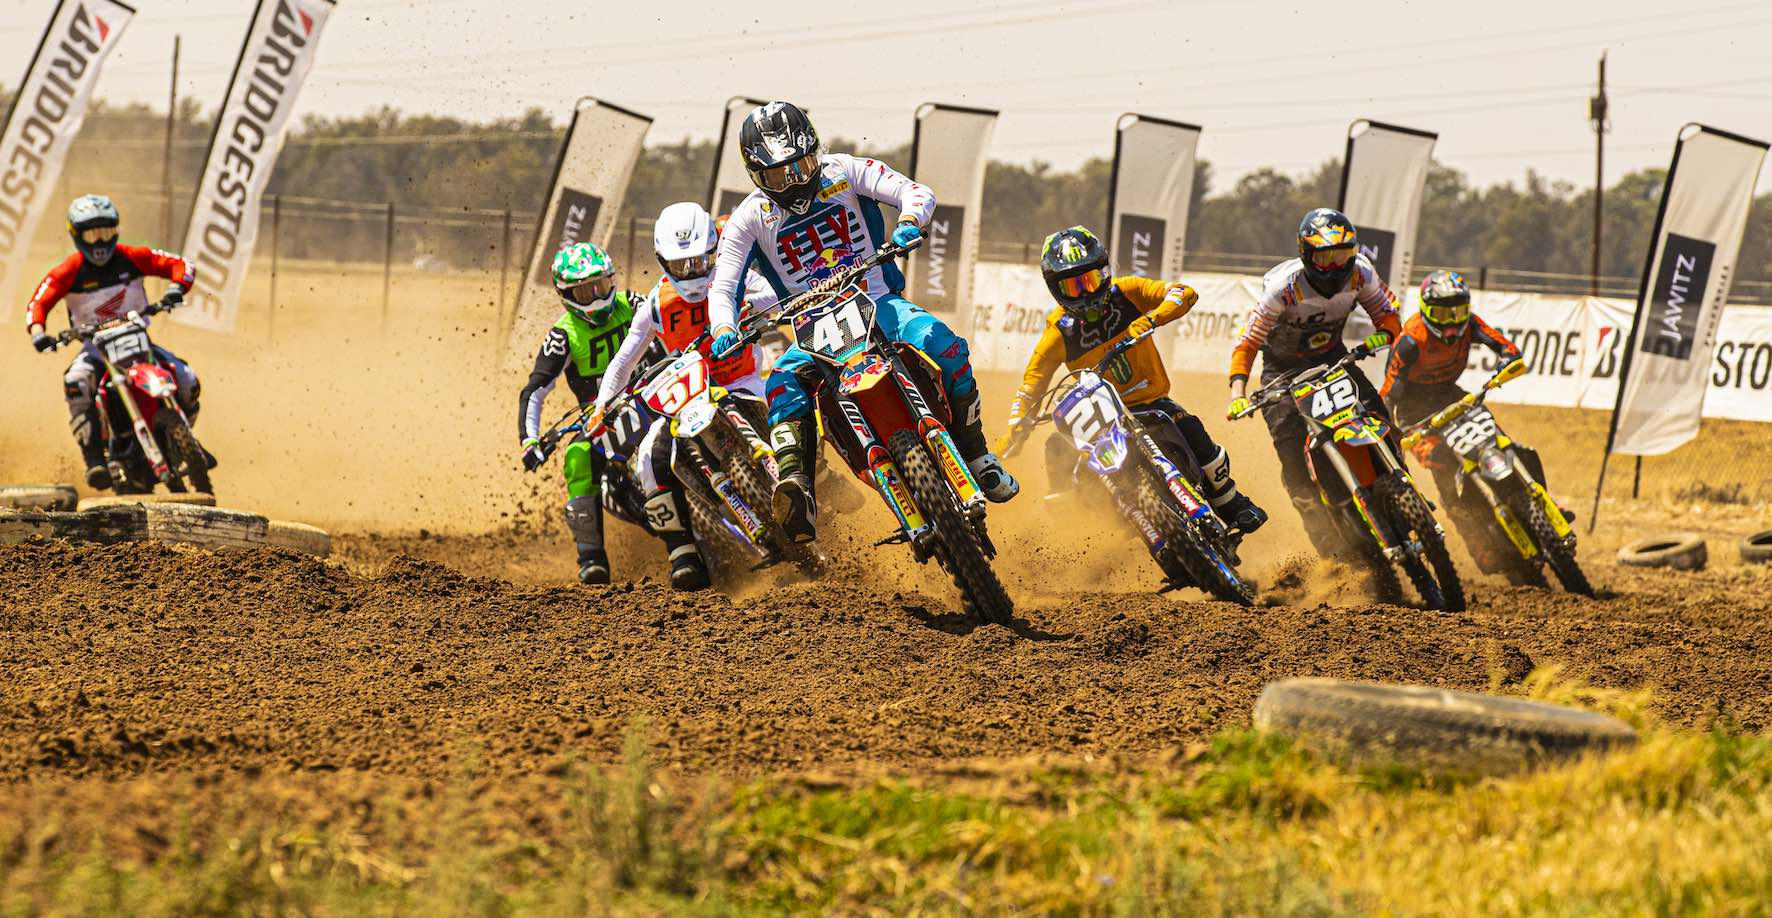 Race report from penultimate round of the 2019 TRP Distributors South African National Motocross Championship